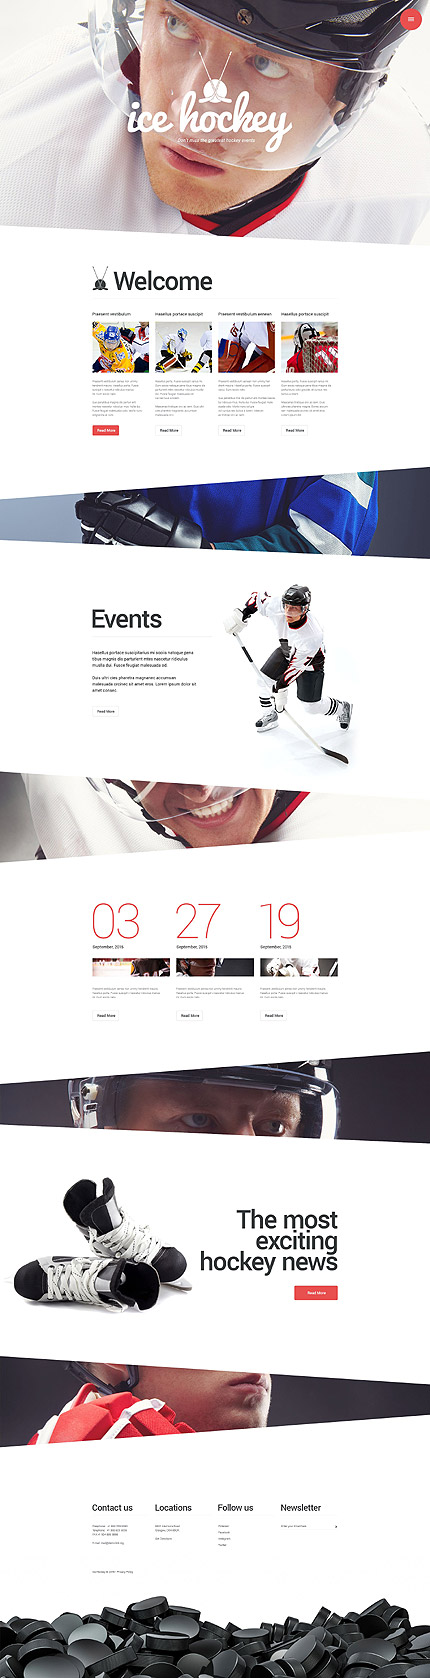 hockey-flat-design